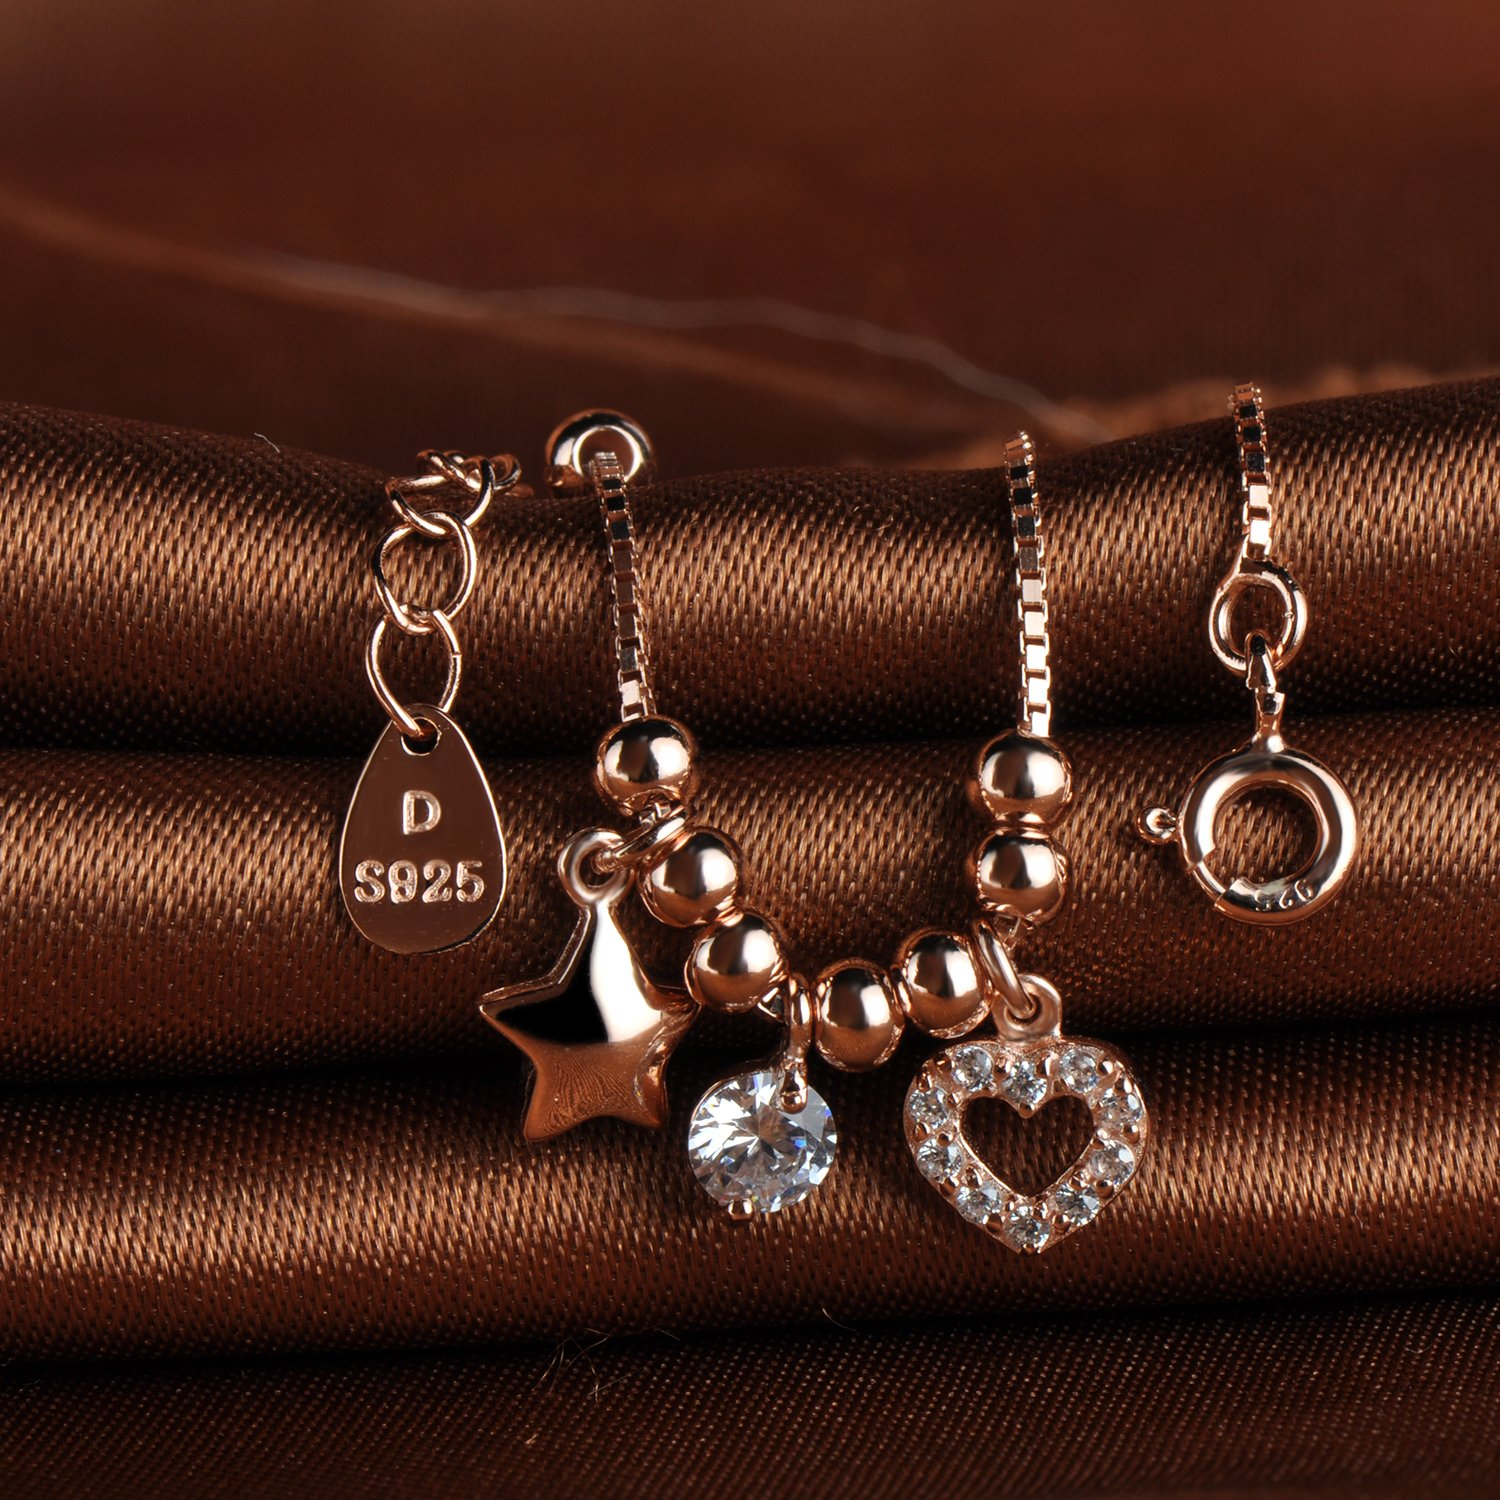 Infinite U Girls 925 Sterling Silver Cubic Zirconia Moveable Star Heart Beads Charm Adjustable Link Bracelets Rose Gold Plated